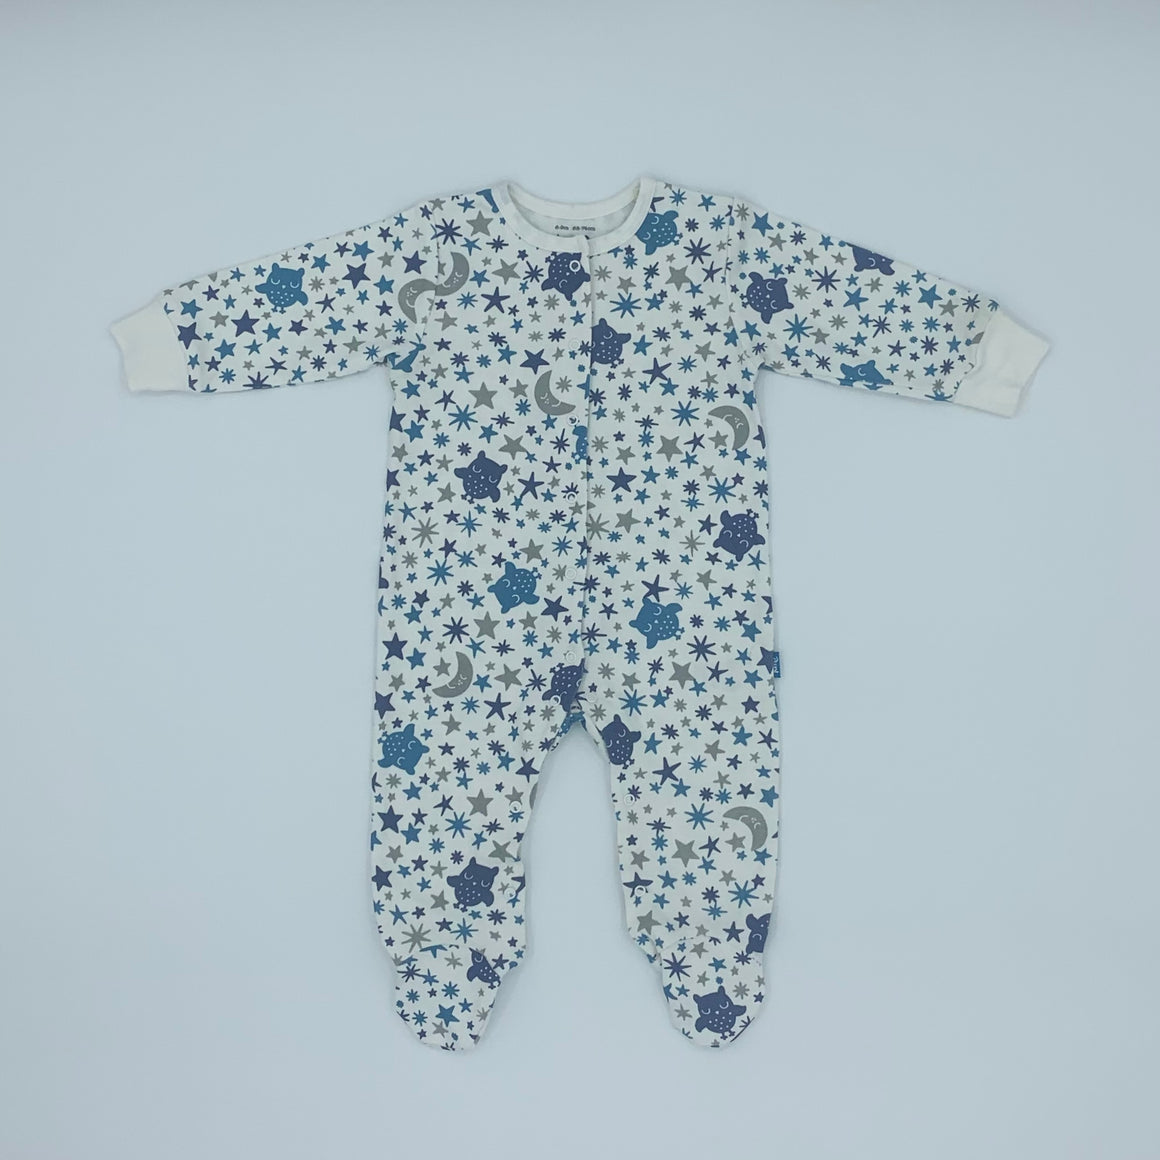 Never Worn Kite owl & star sleepsuit size 6-9 months